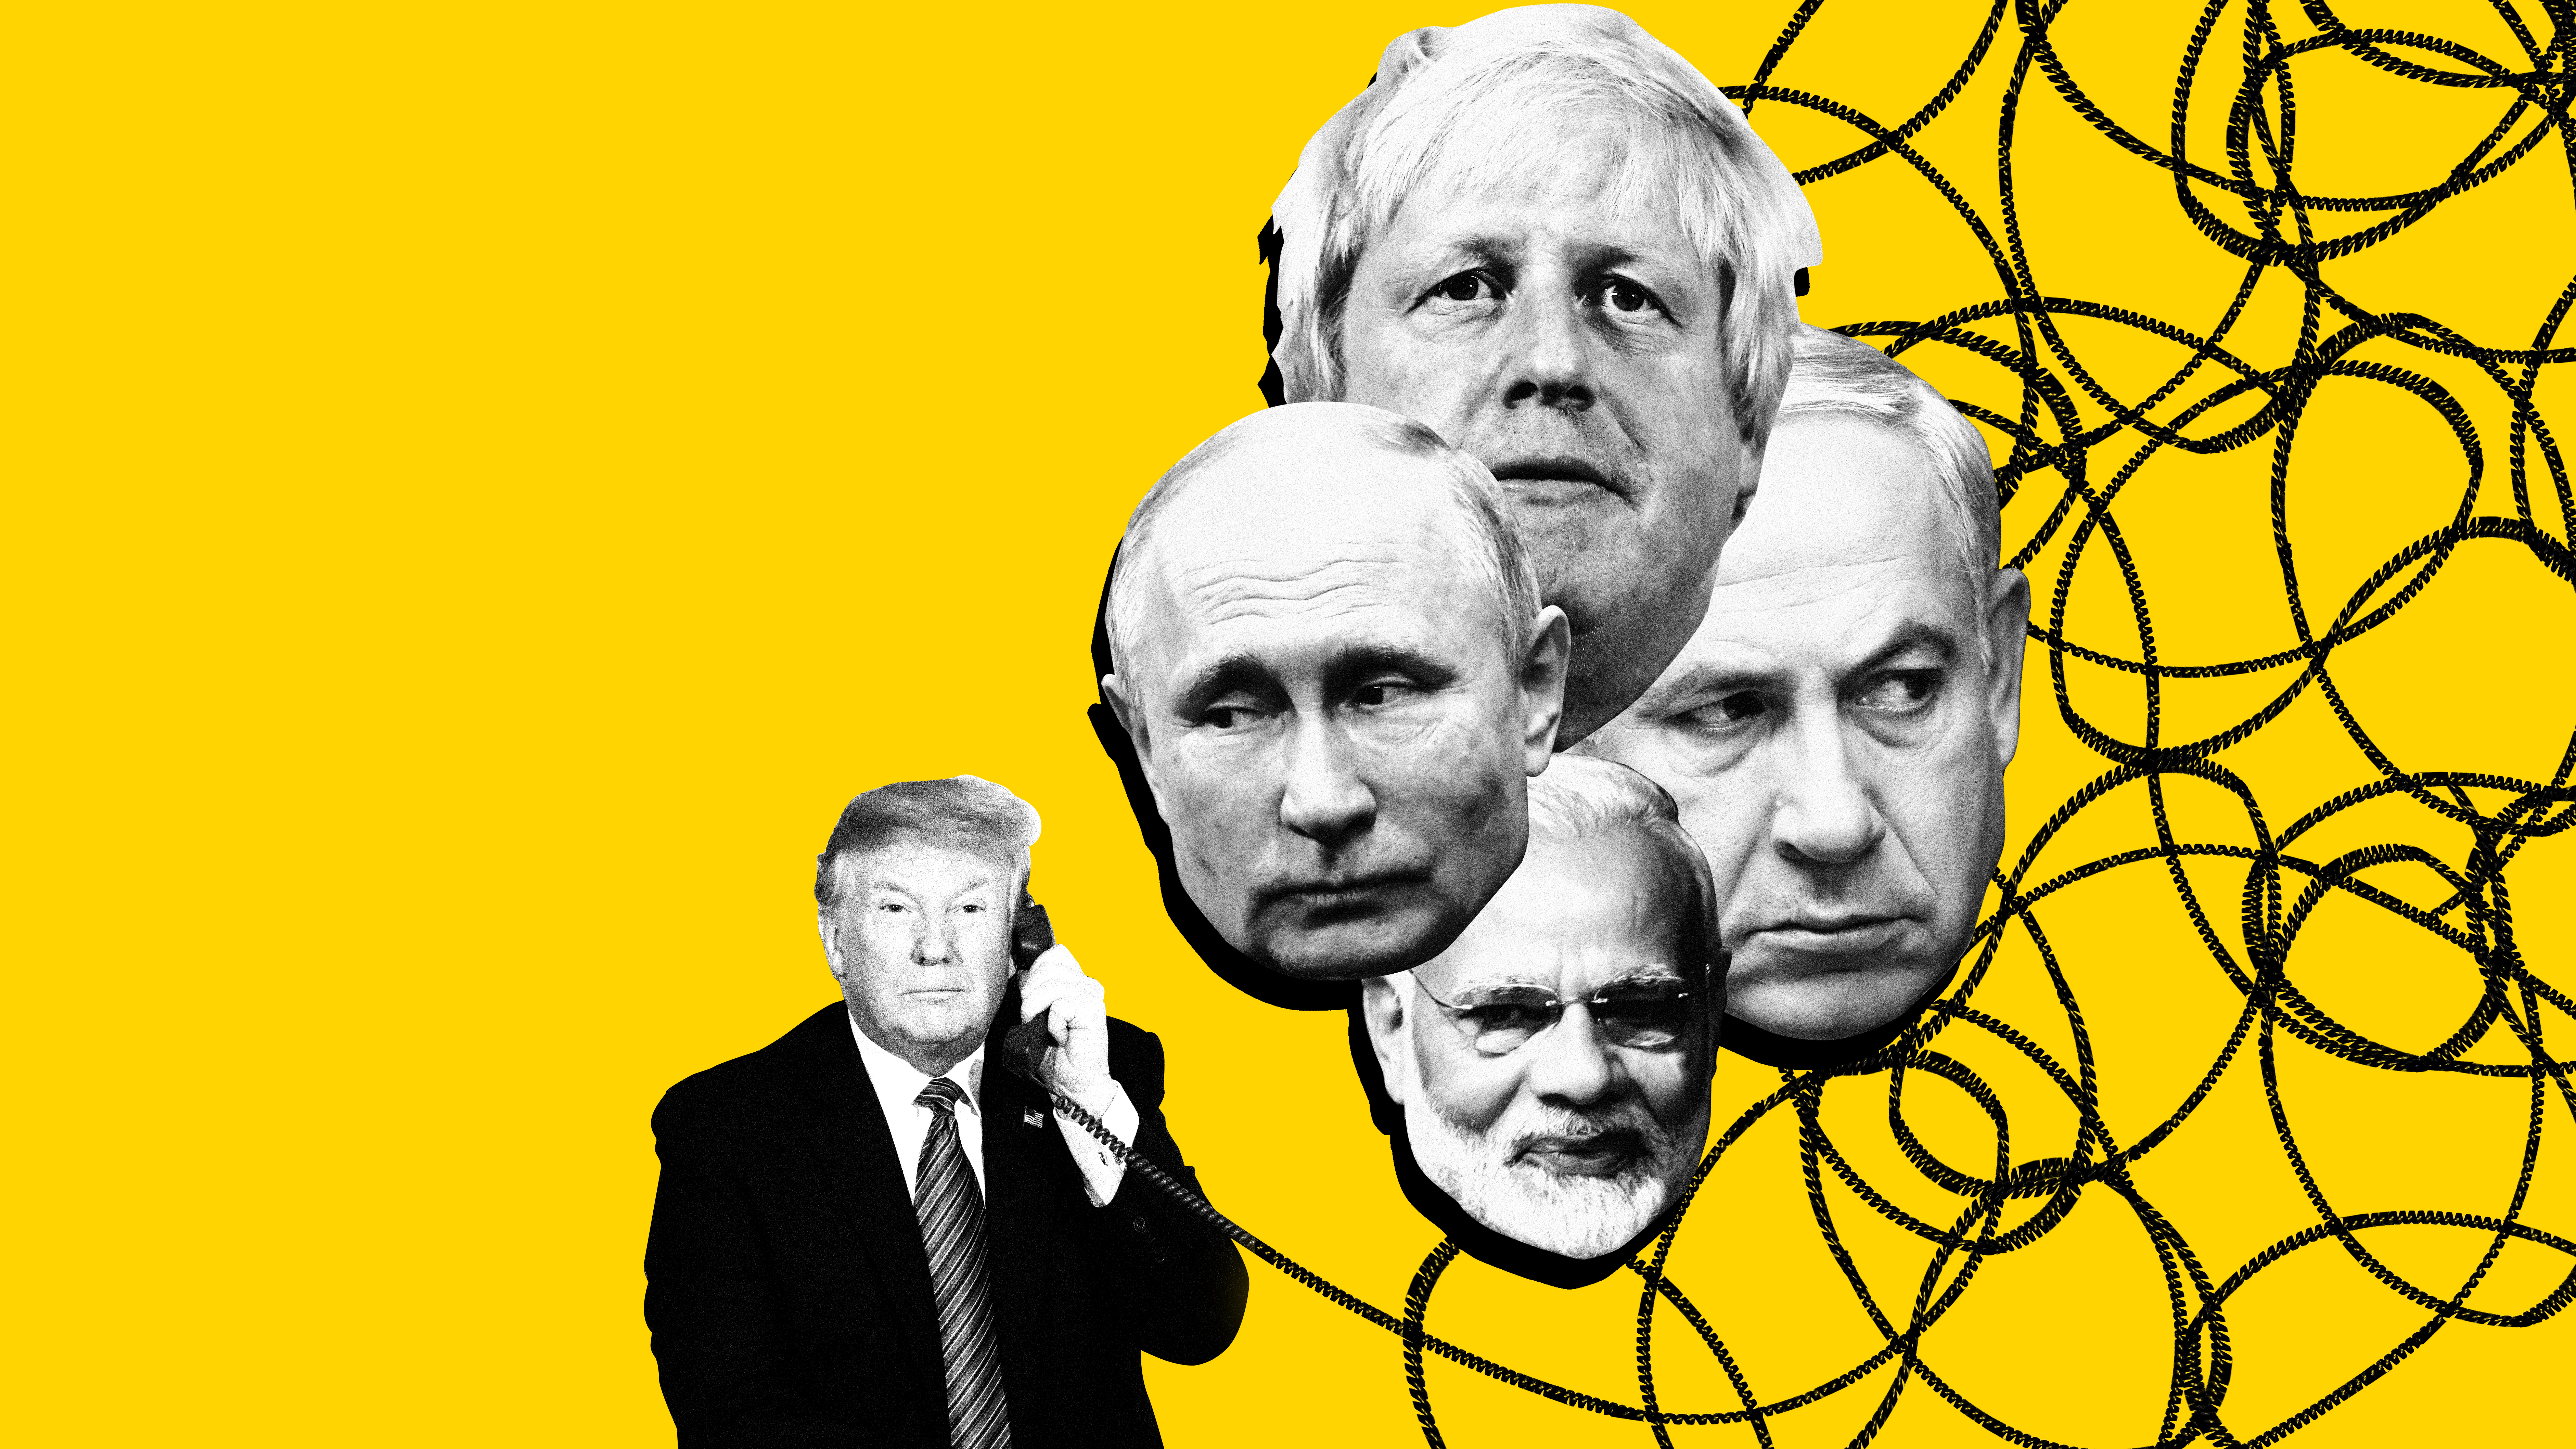 Donald Dossier: Who You Gonna Call?